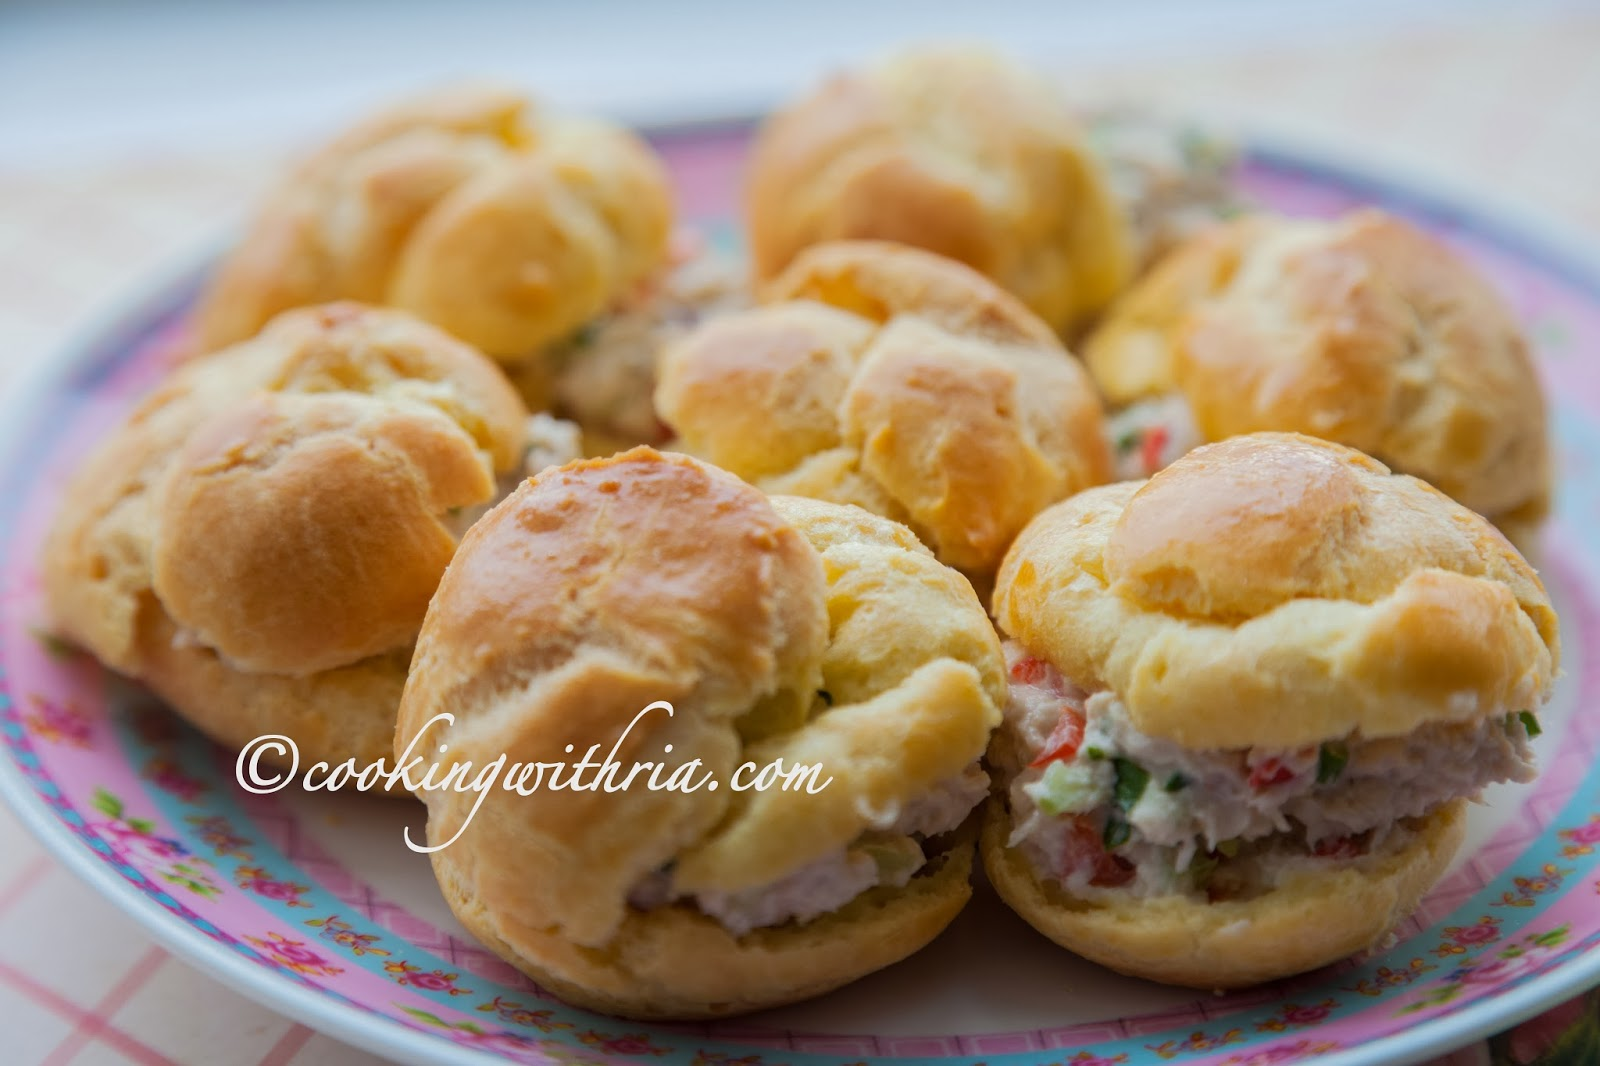 Savoury Fillings For Choux Pastry